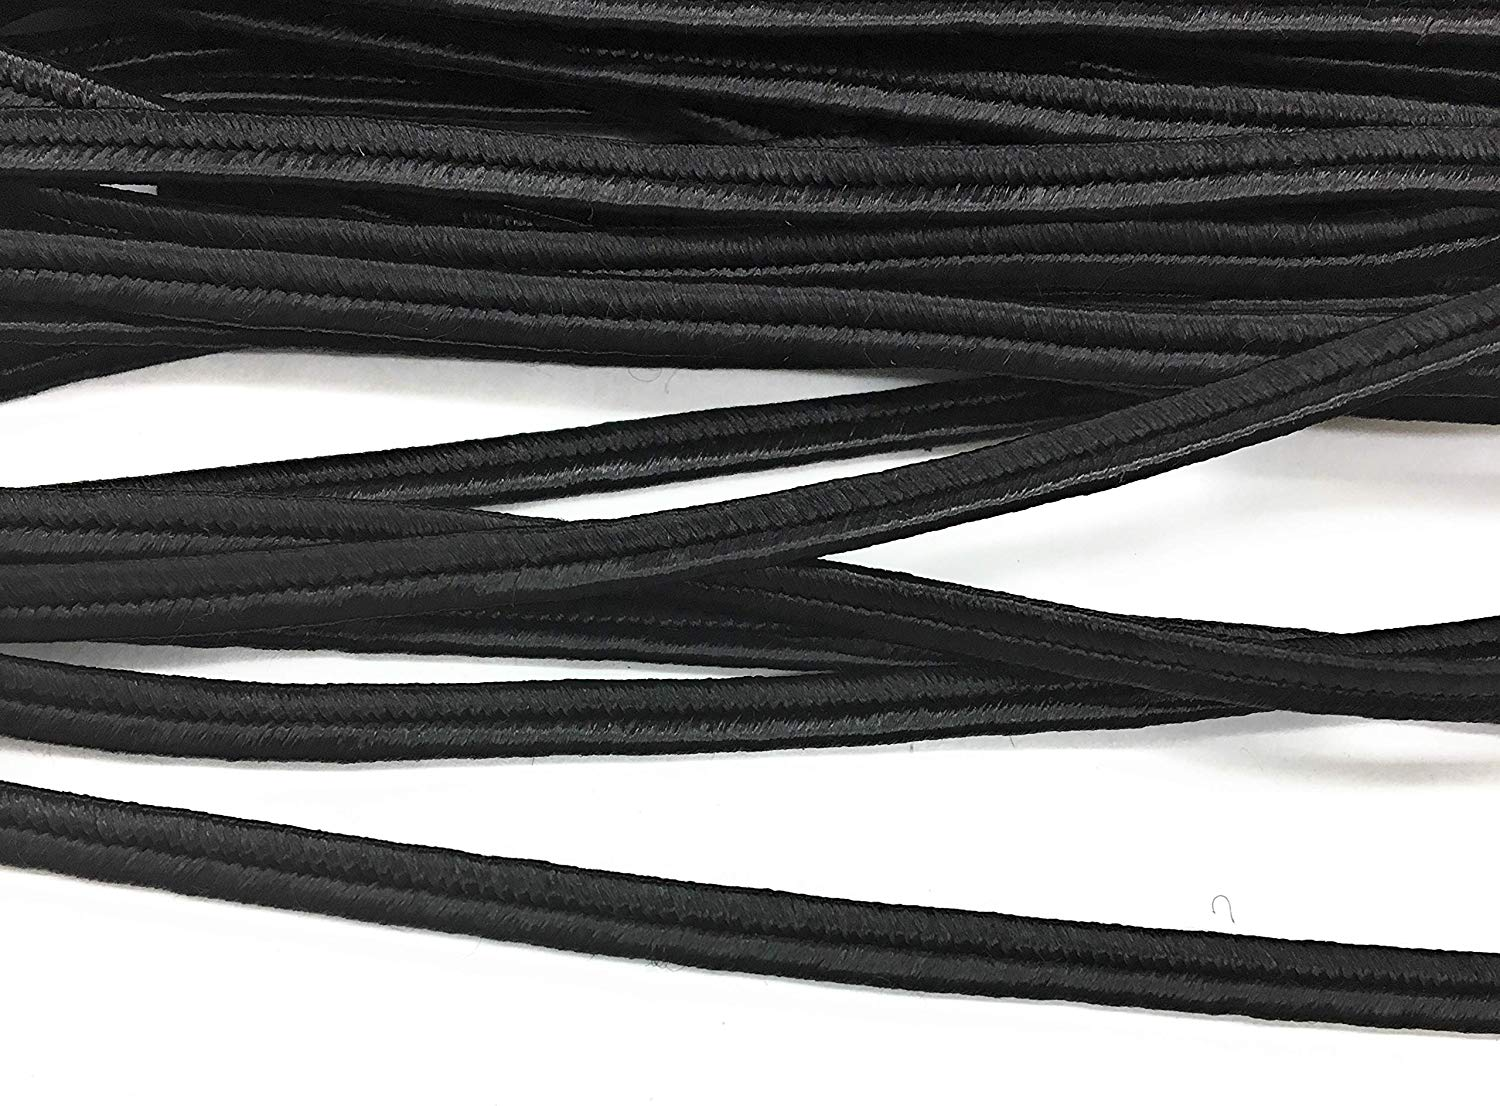 Sewing,Quilting Trimming String 10 Yards 2mm Grey Soutache Rayon Braided Cord Beading